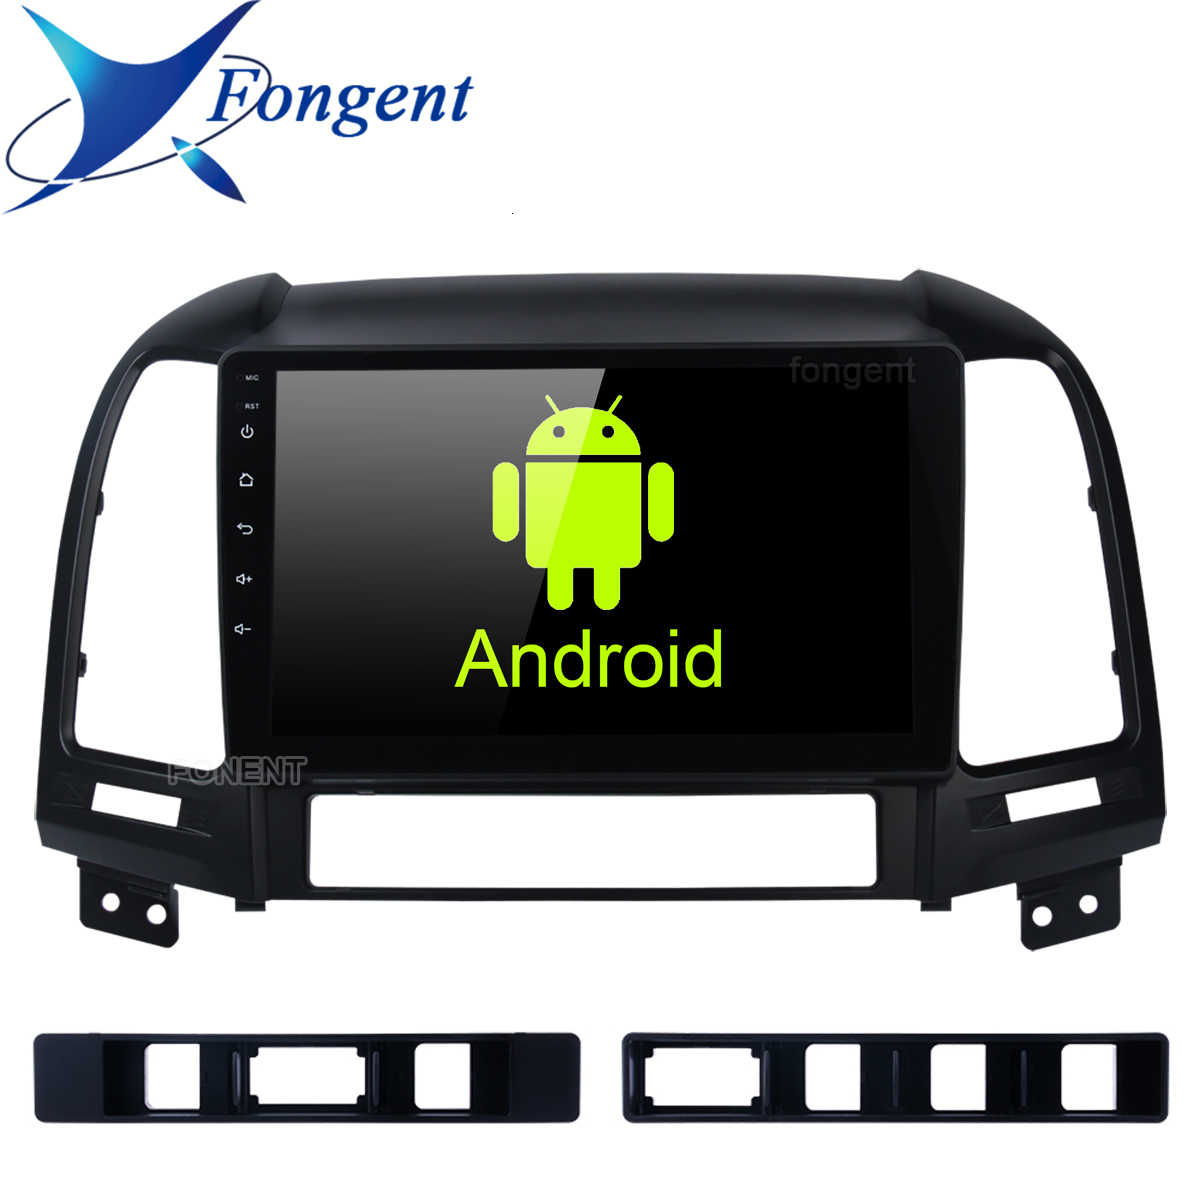 Voor Hyundai Santa Fe 2005 2006 2007 2008 2009 2010 2011 2012 Android 9.0 Auto Radio Multimedia Player Gps Hoofd unit Stereo Audio